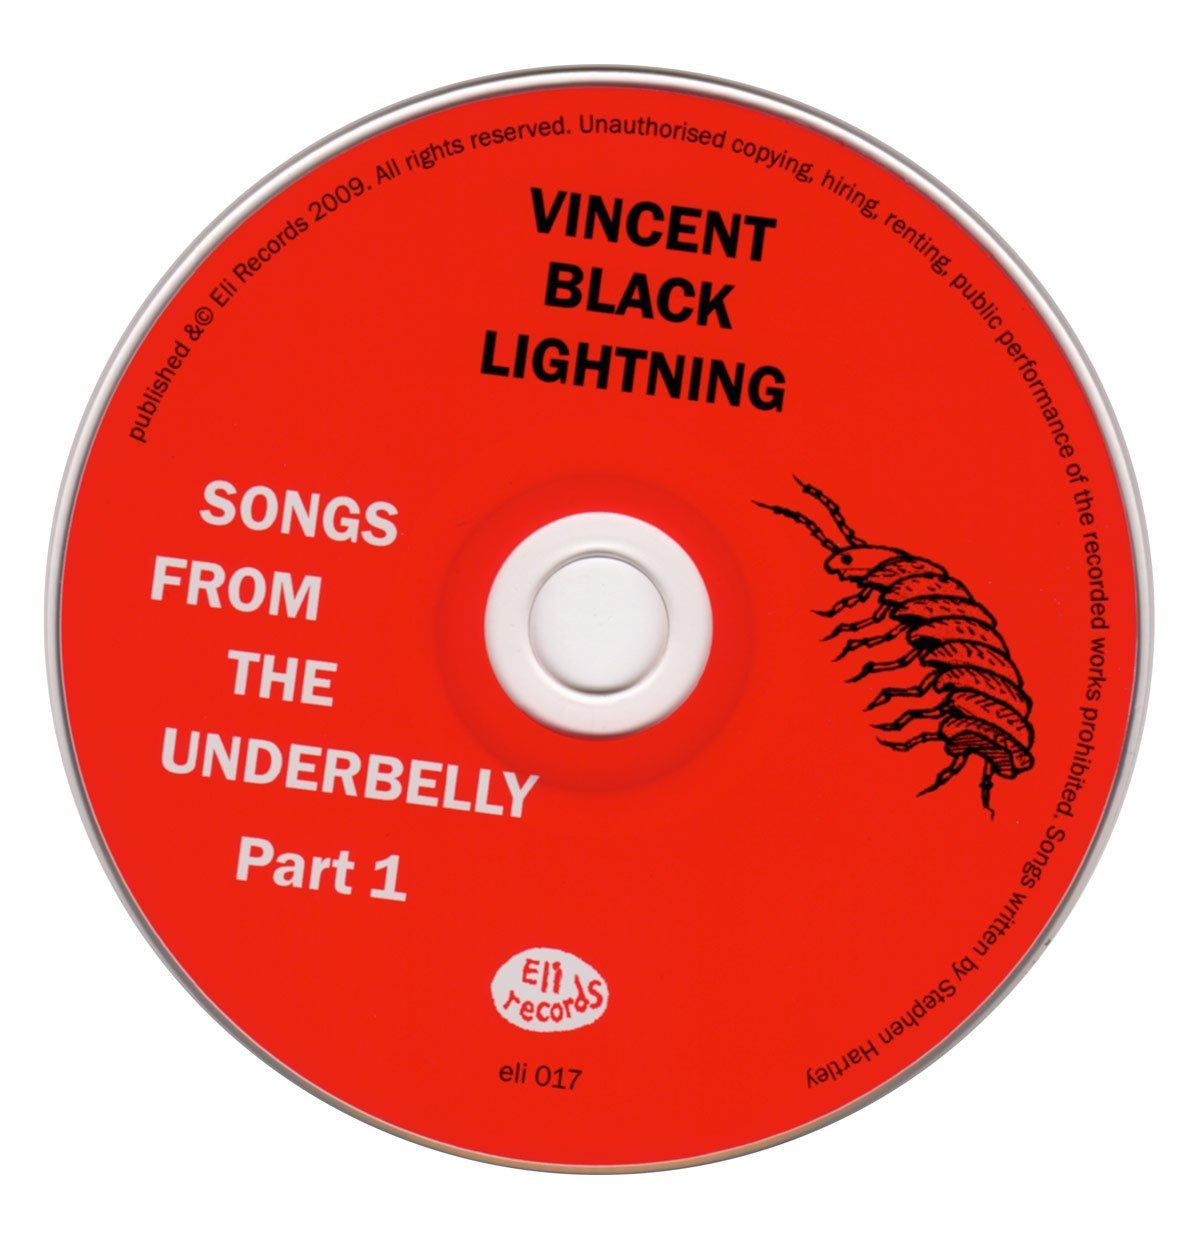 The Vincent Black Lightning - Songs From The Underbelly Part 1 CD - From Eli Records